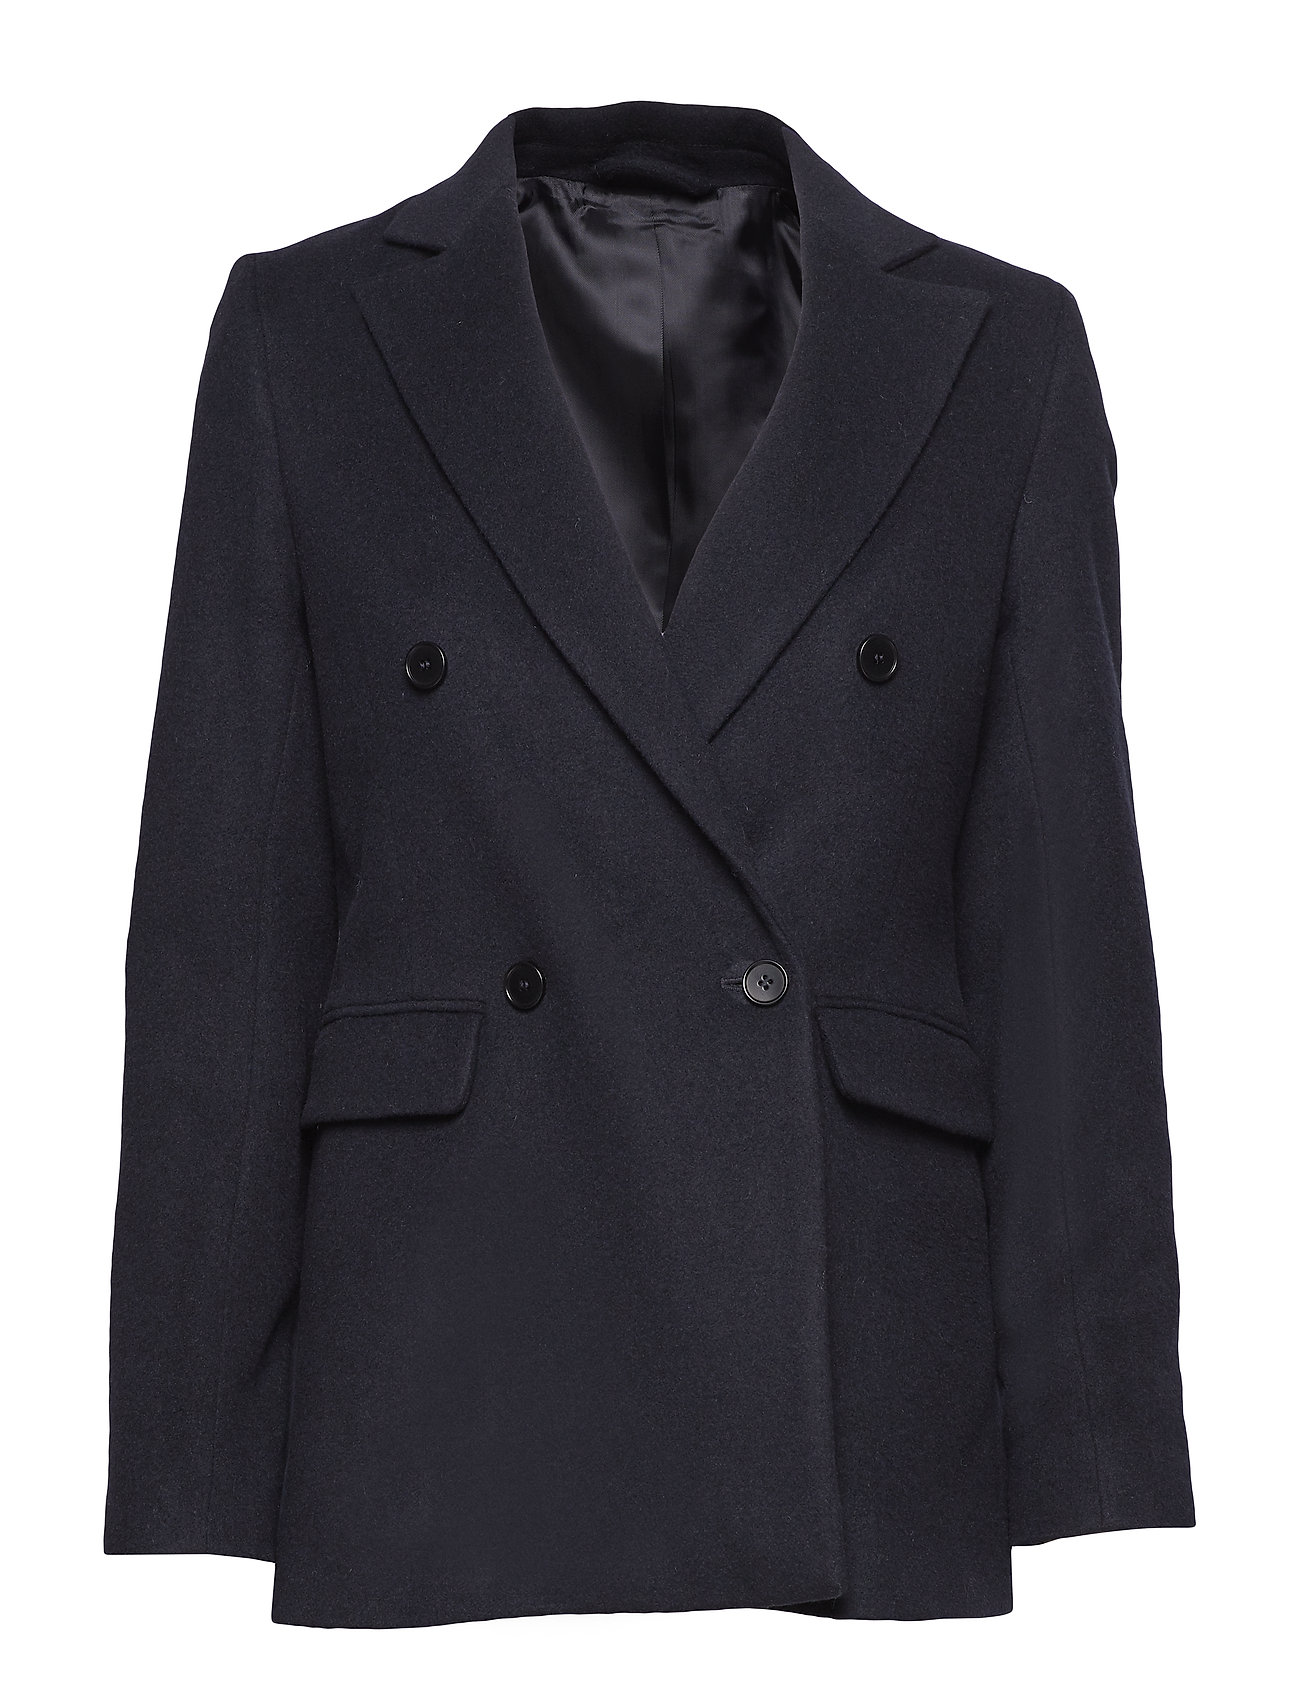 2NDDAY 2ND Doreen Exclusive - NAVY BLAZER